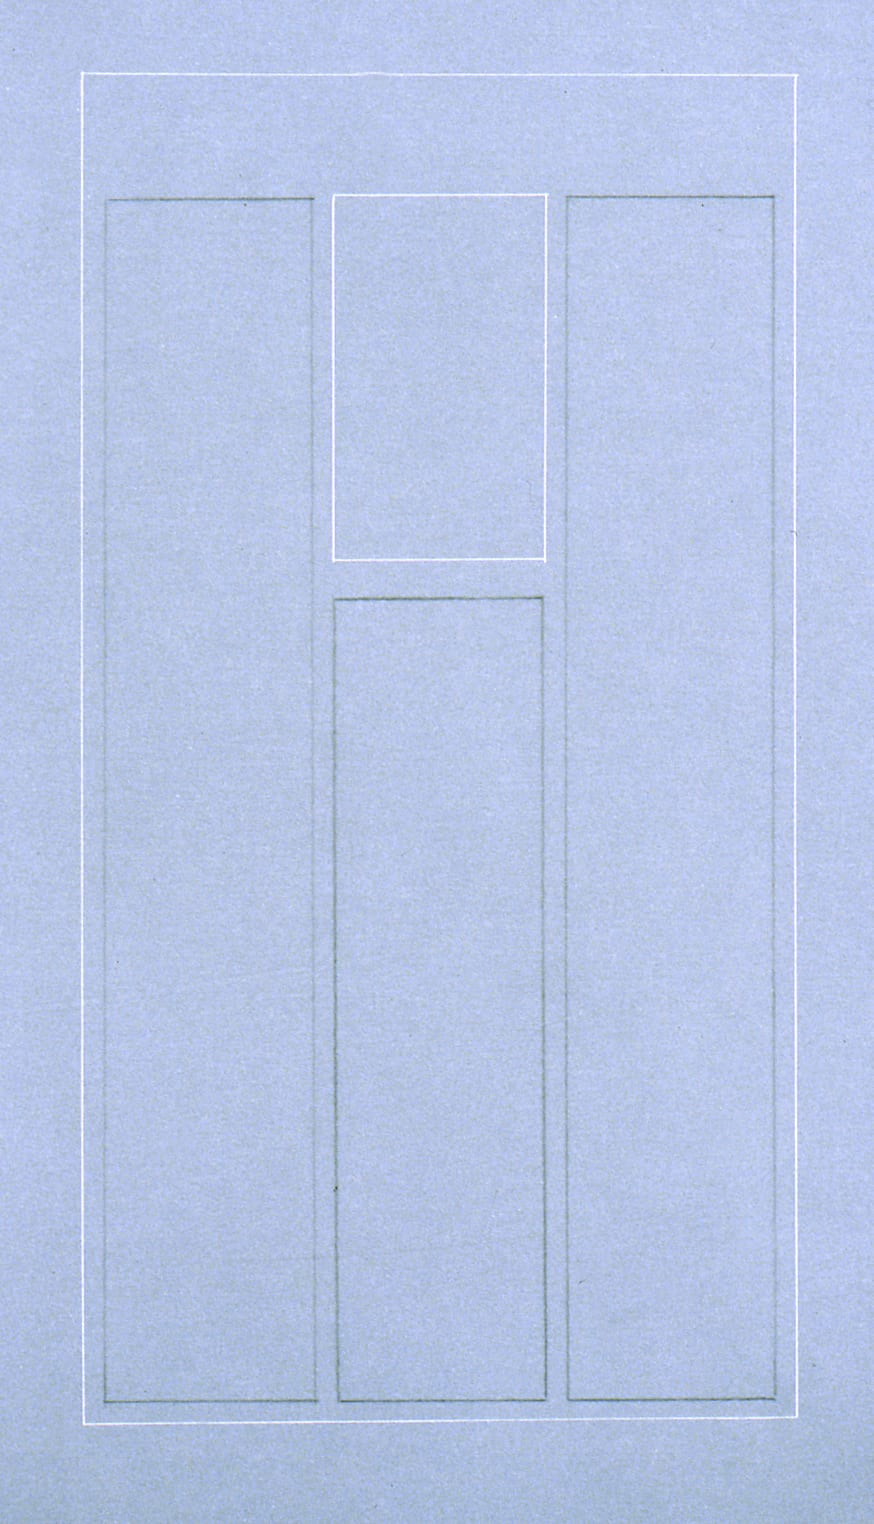 Karen L. Schiff, Agnes Martin, El País, 21 December 2004, II, 2005, graphite and stylus on vellum, 17 x 12 inches (artwork © Karen L. Schiff)